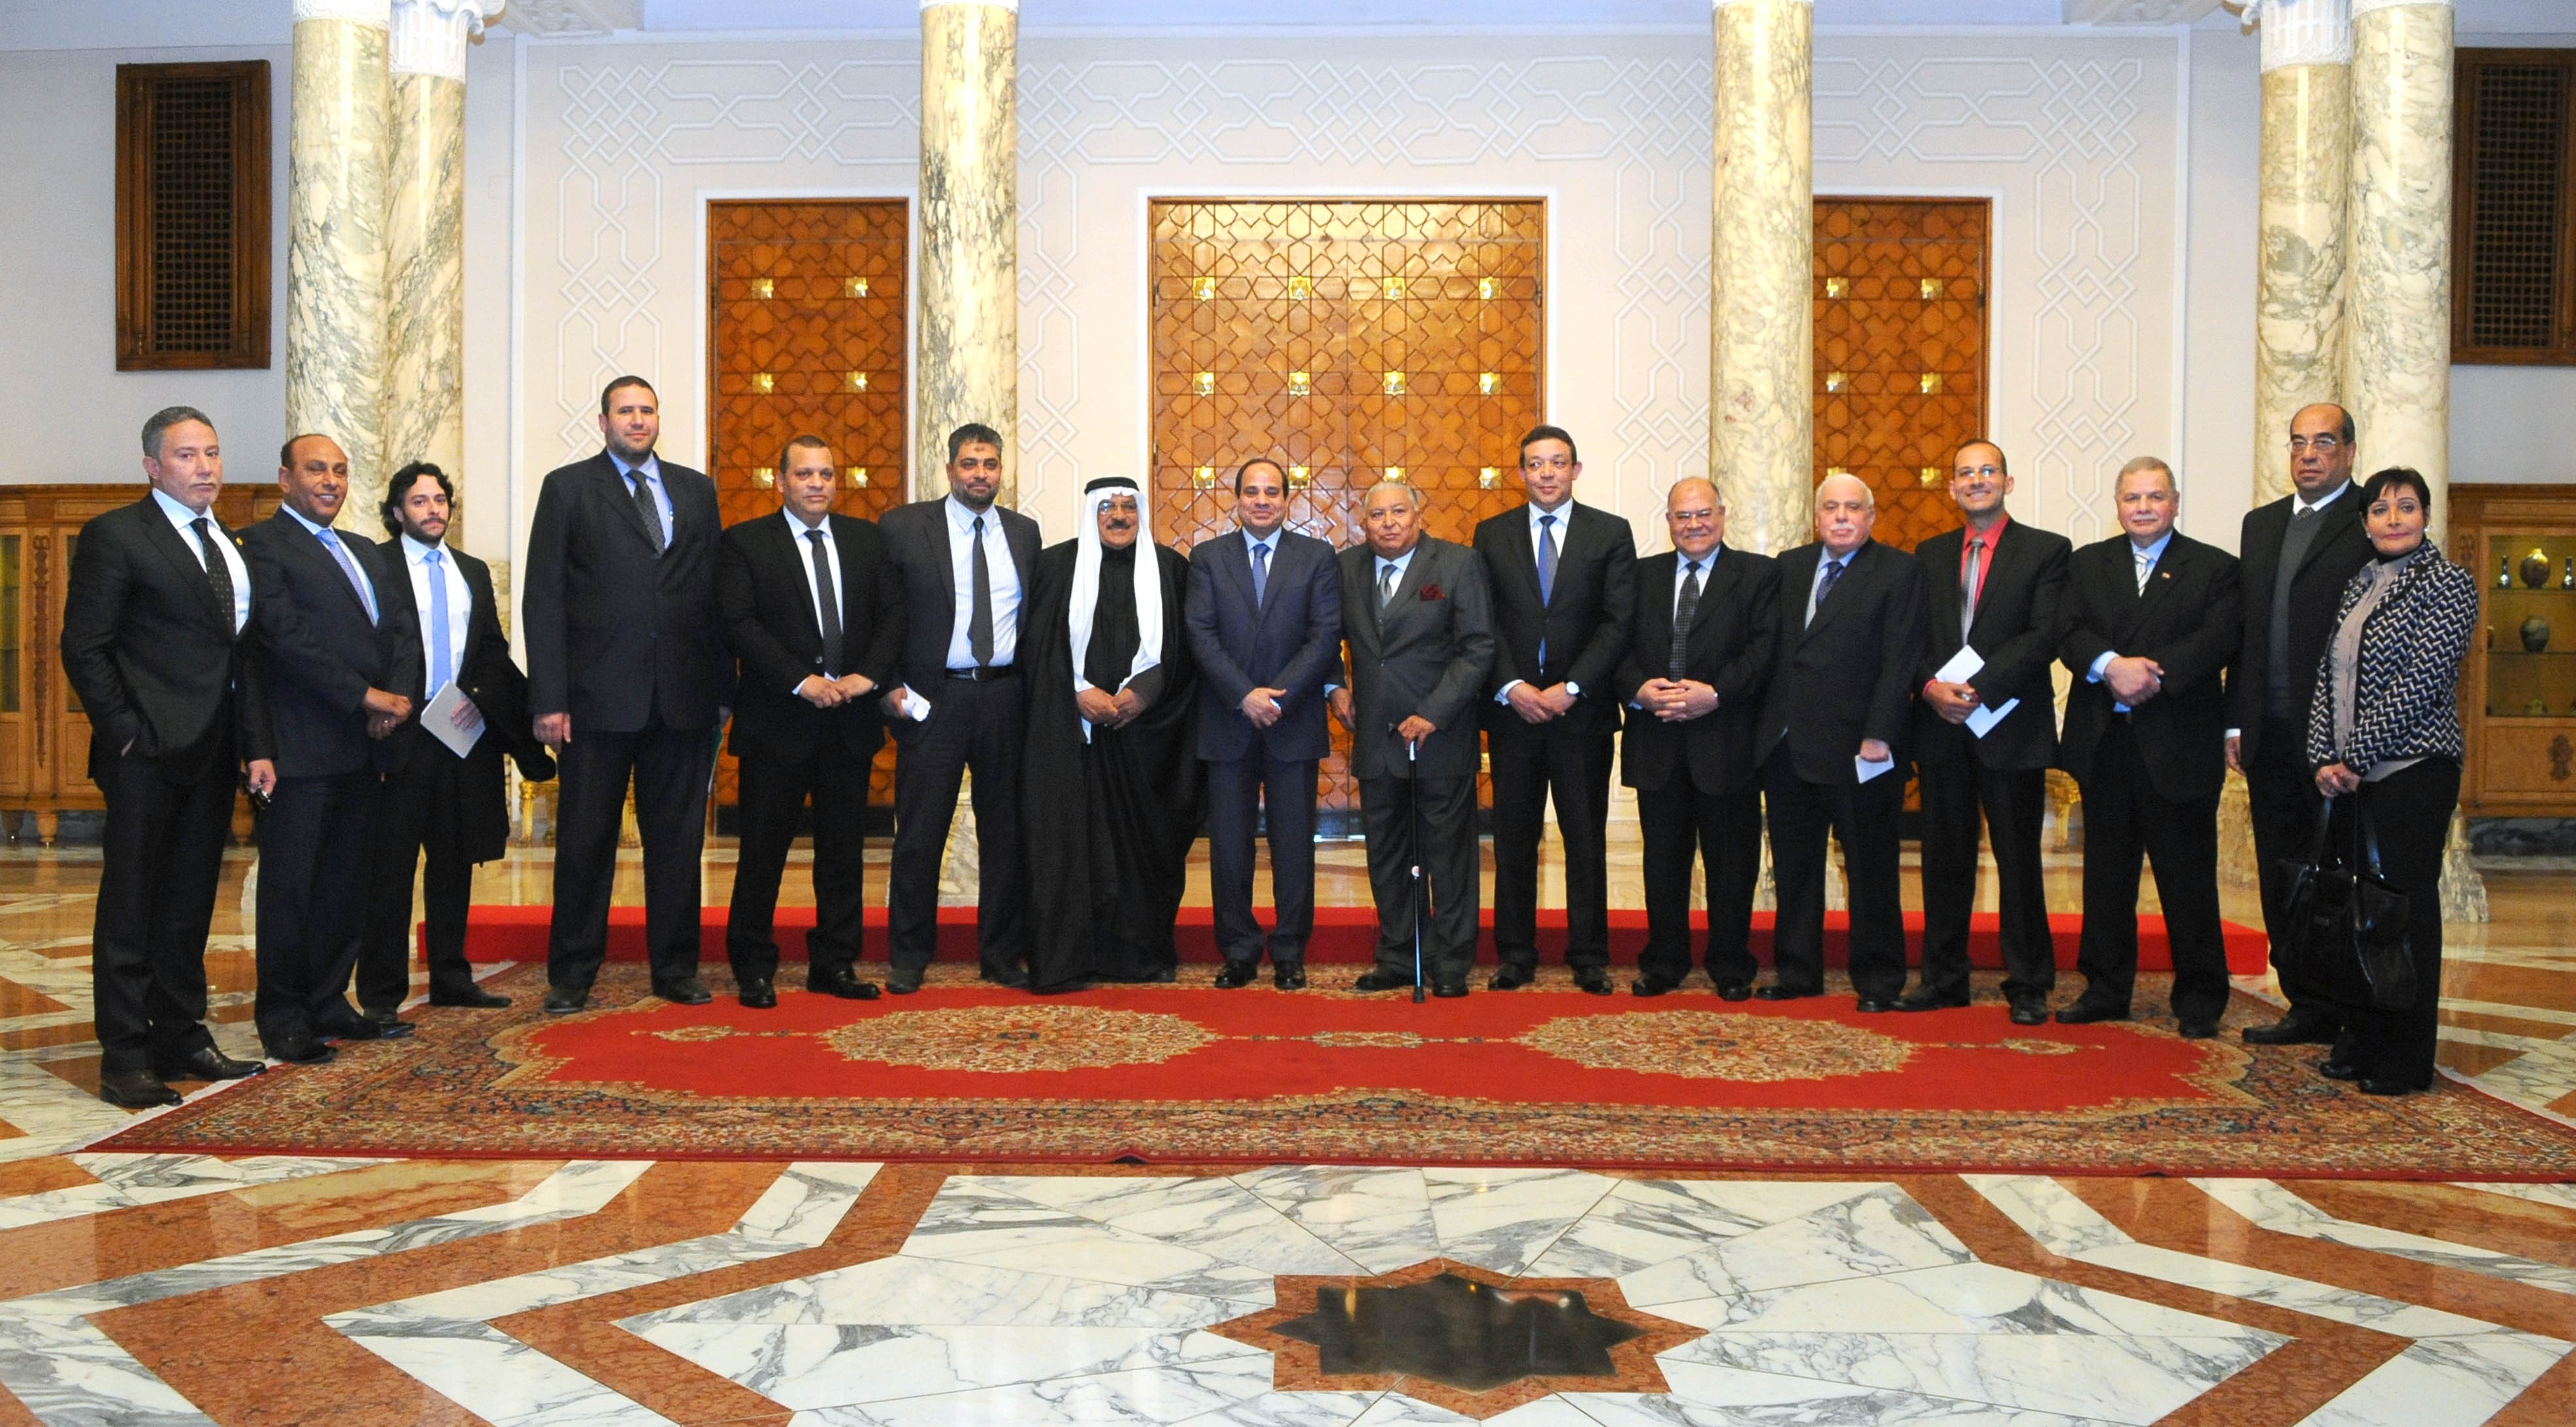 President Abdel Fattah Al-Sisi stands among leader of political parties in Egypt, in the first official meeting since he was sworn in as president. The meeting extended over Monday and Tuesday ahead of the parliamentary elections of 2015.  (Photo Presidency Handout)